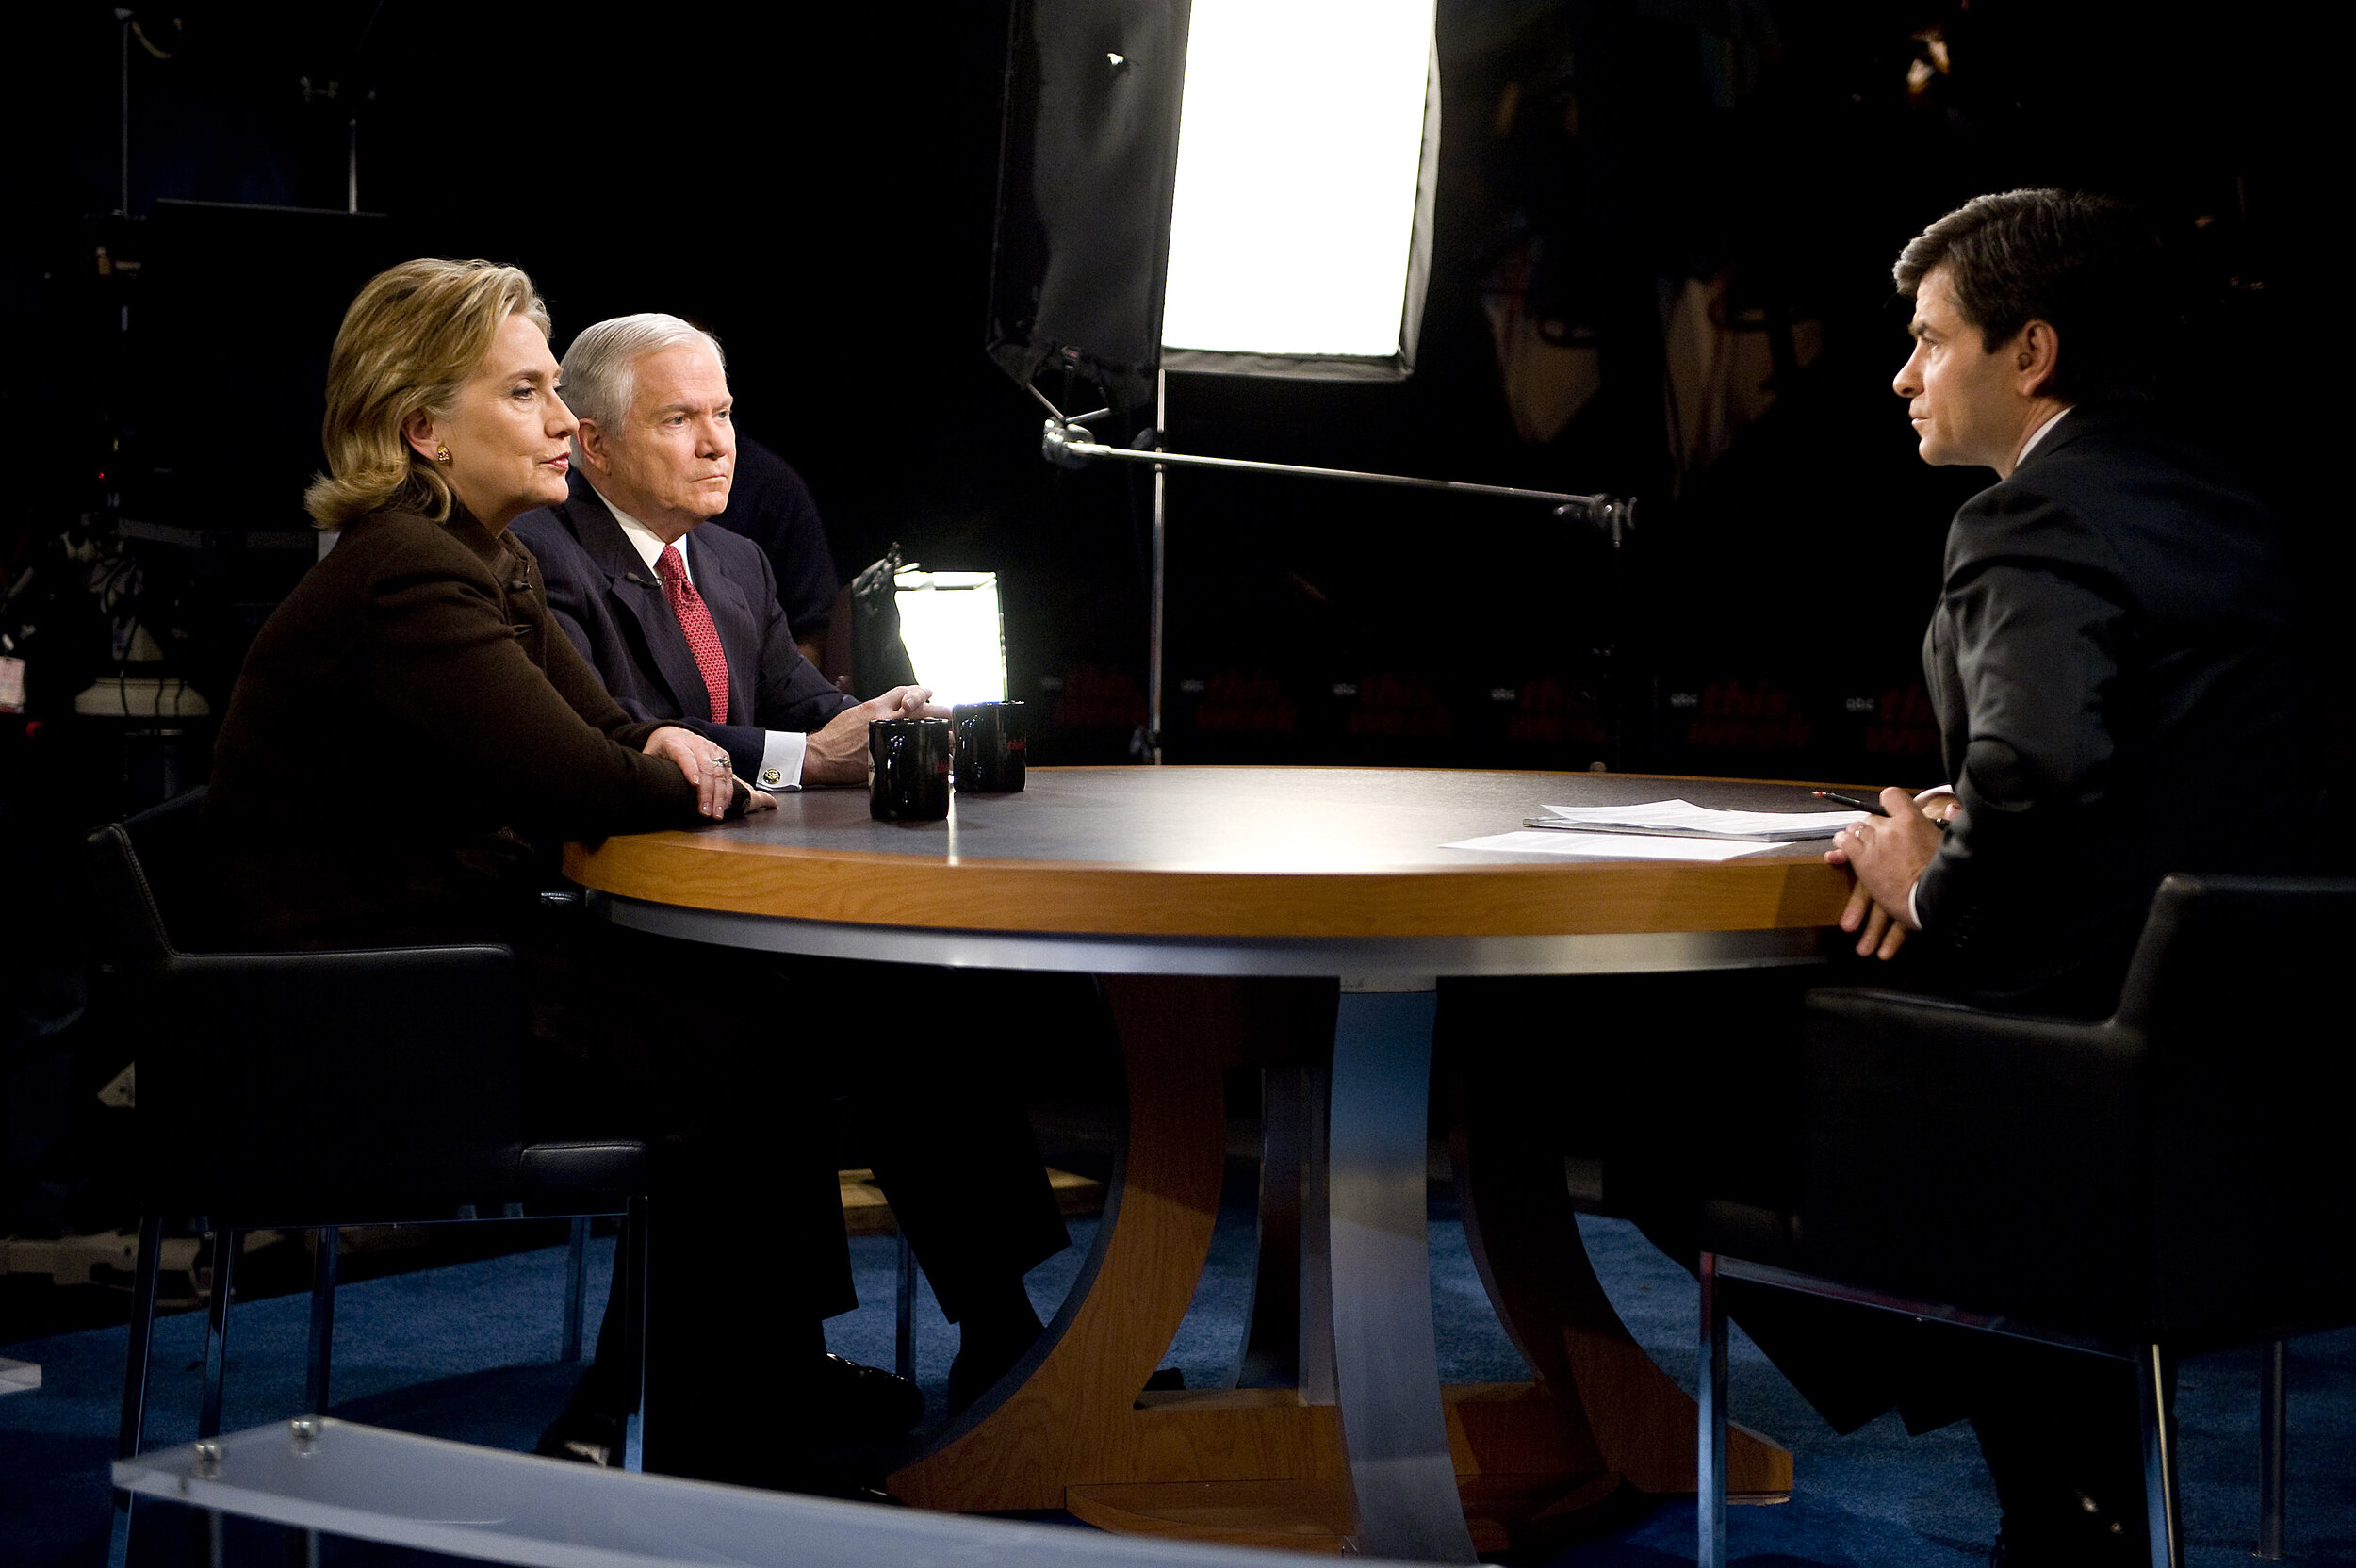 """Secretary of Defense Robert M. Gates and Secretary of State Hillary Clinton talk with George Stephanopoulos, on ABC's """"This Week,"""" 2009 ( U.S Department of Defense )"""